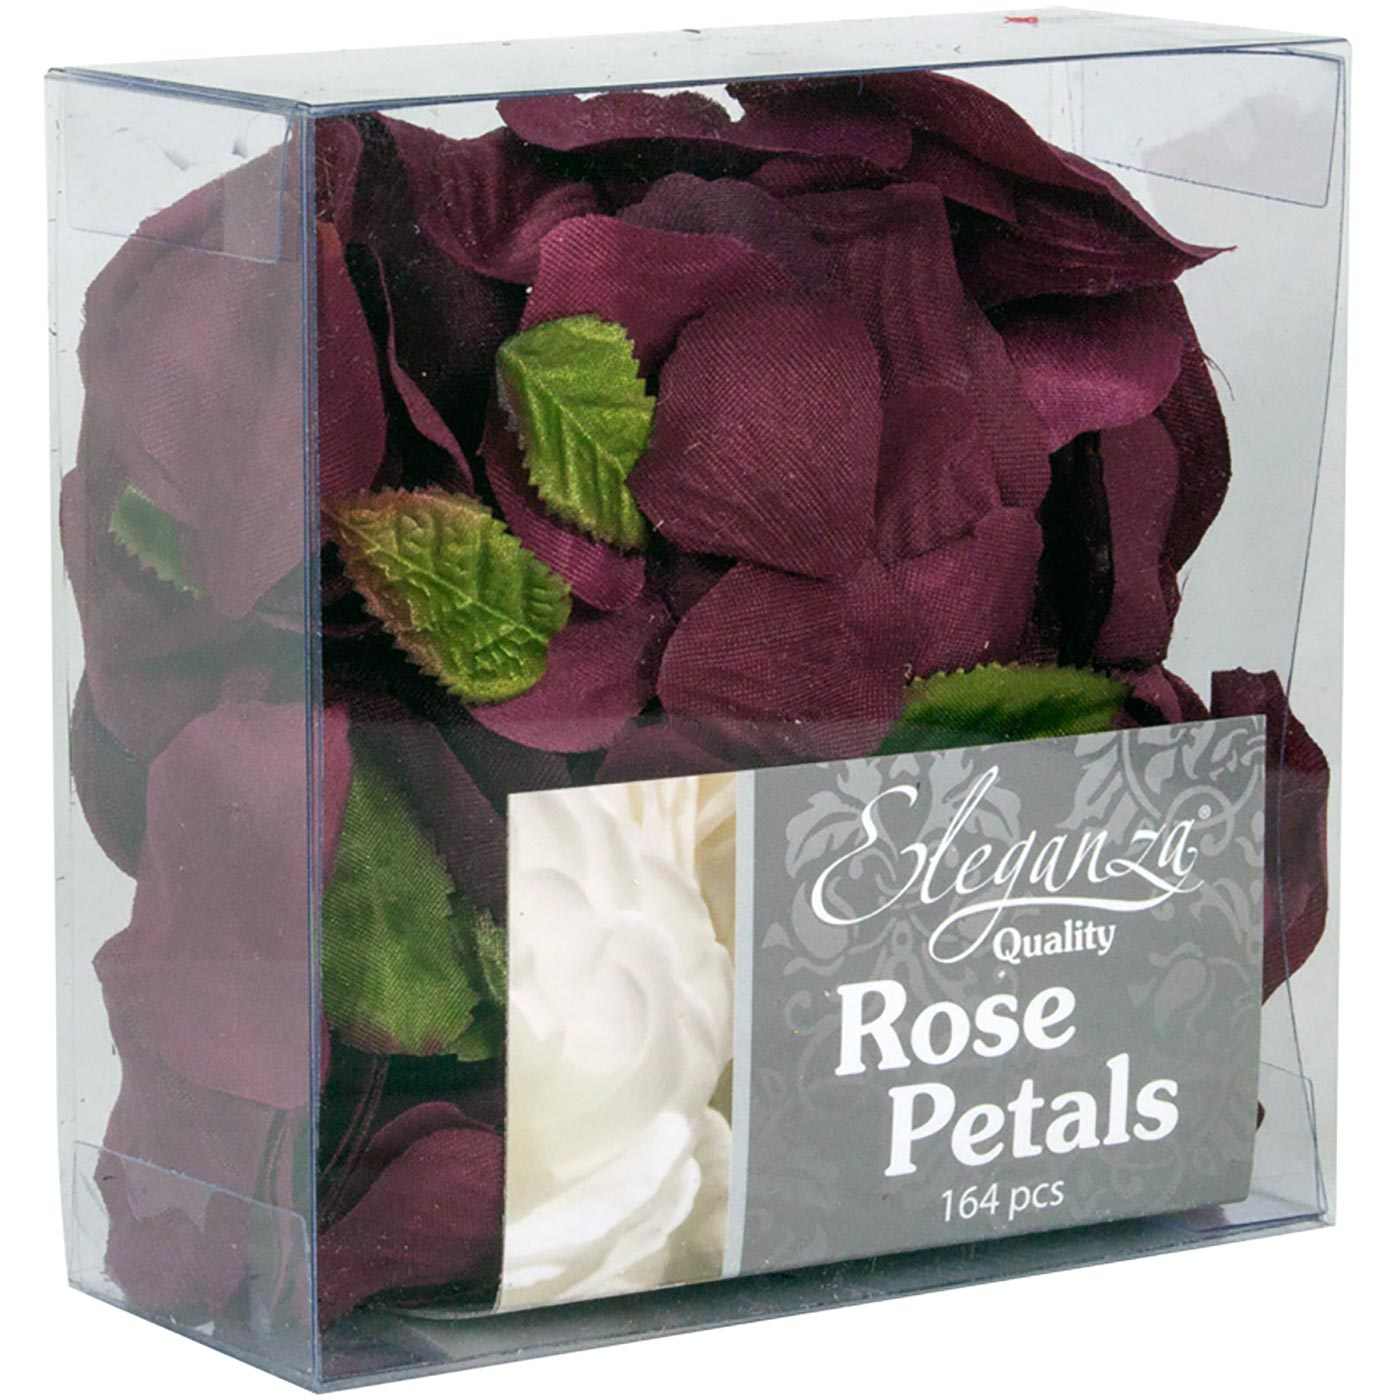 Eleganza Rose Petals Acetate box 164pcs Burgundy